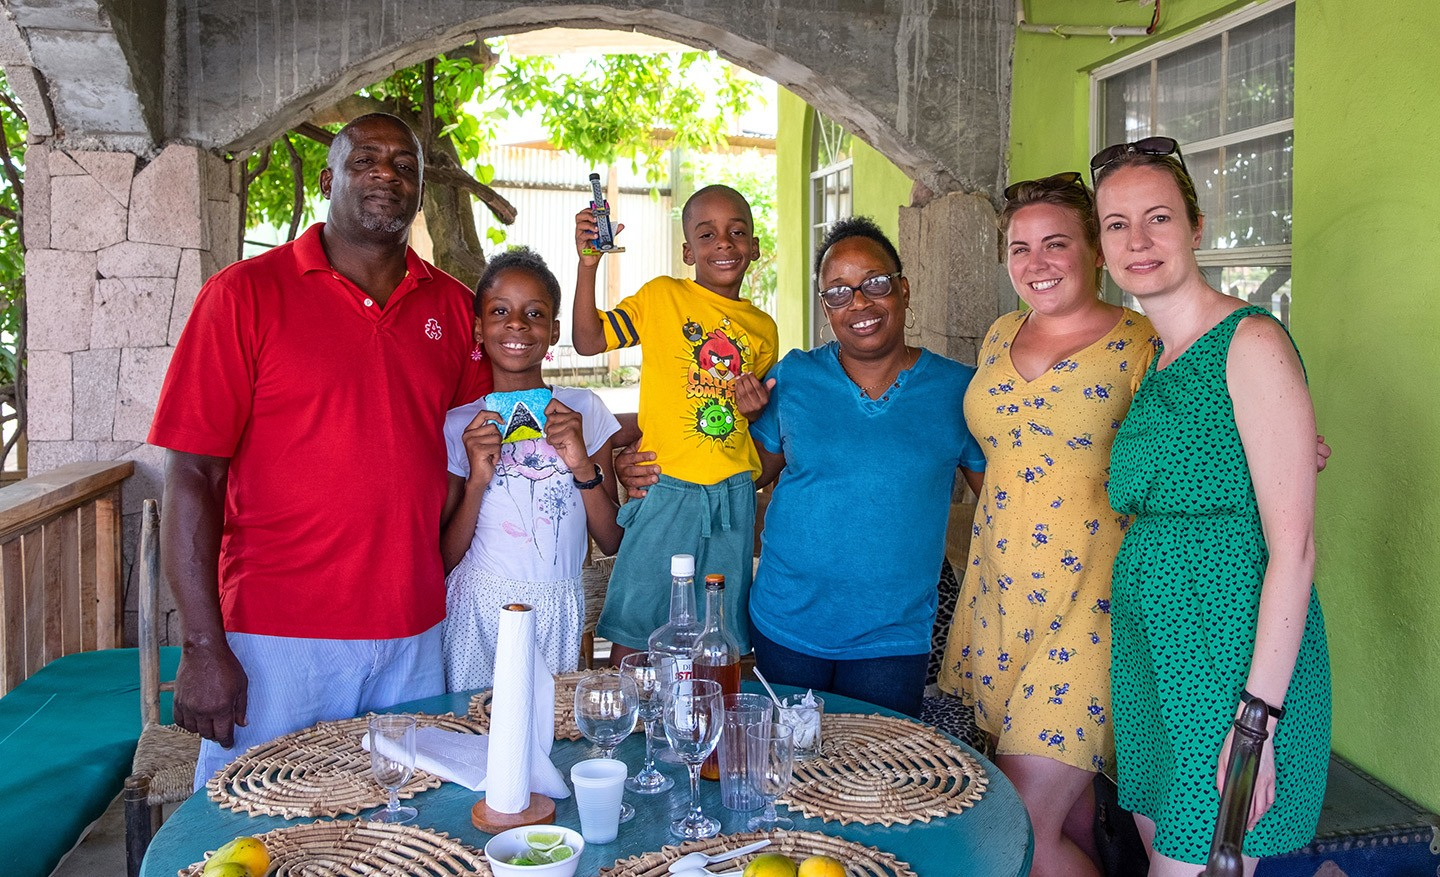 Creole cookery class in Saint Lucia